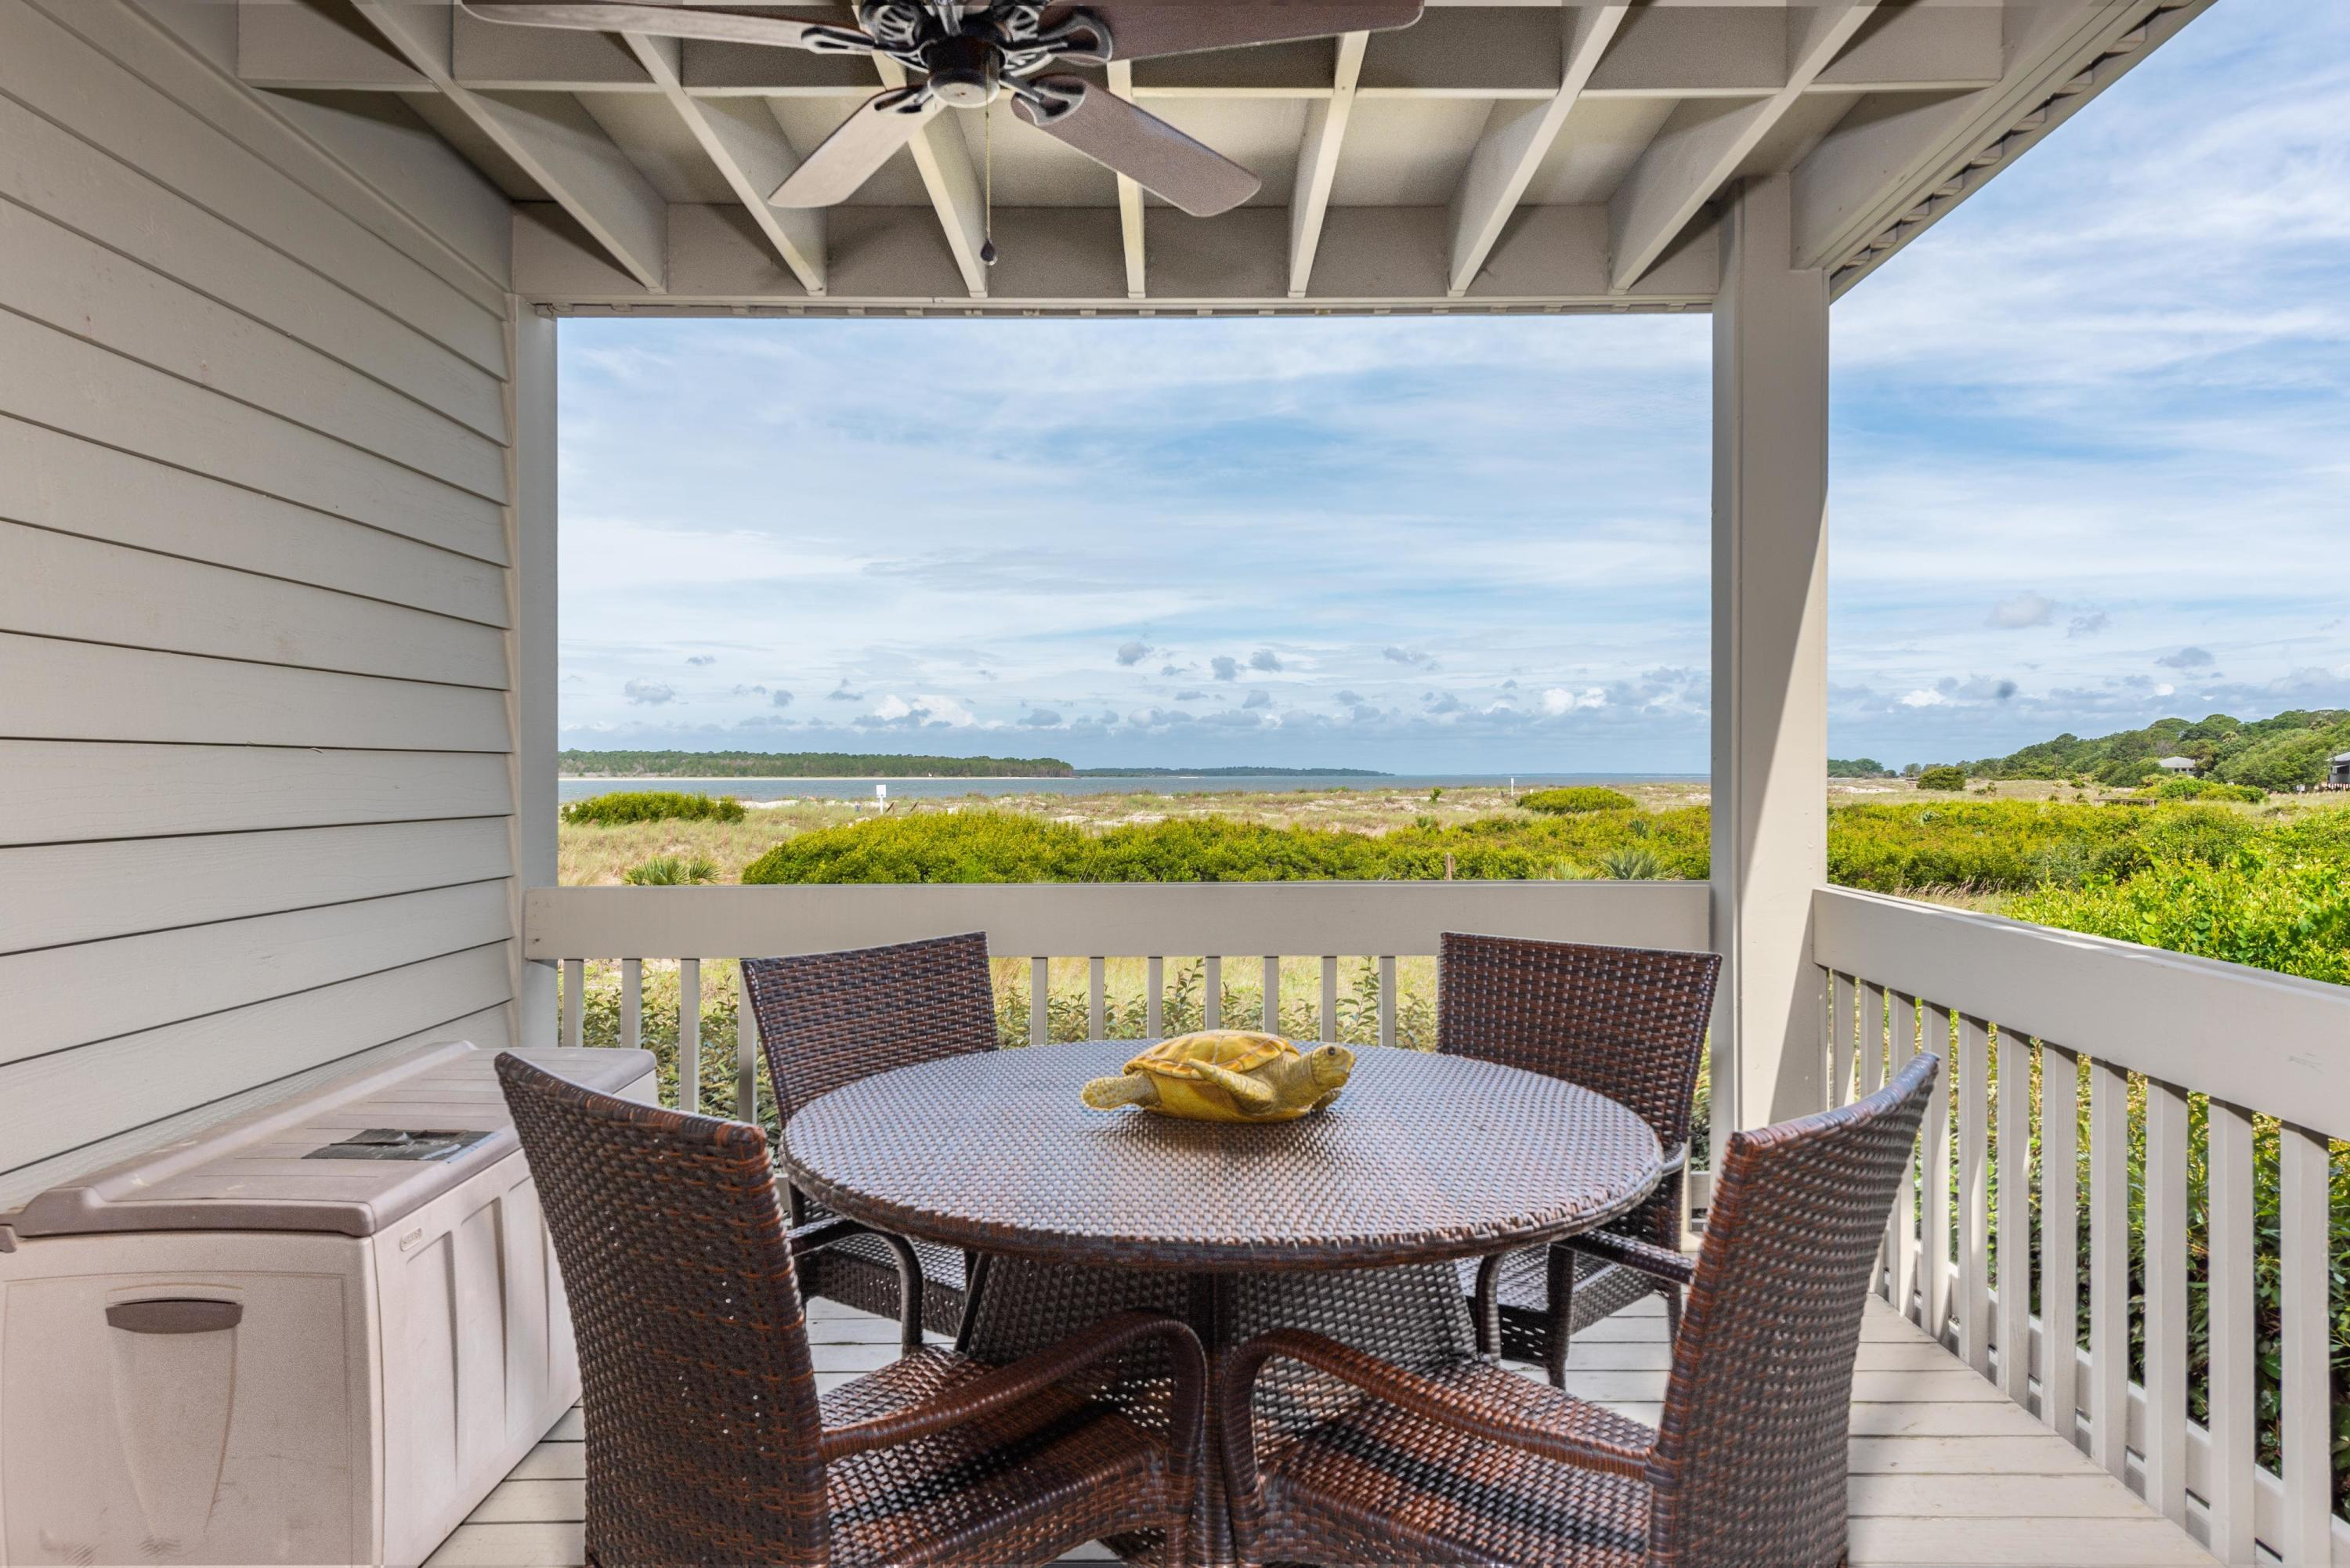 1339 Pelican Watch Villa Seabrook Island, SC 29455